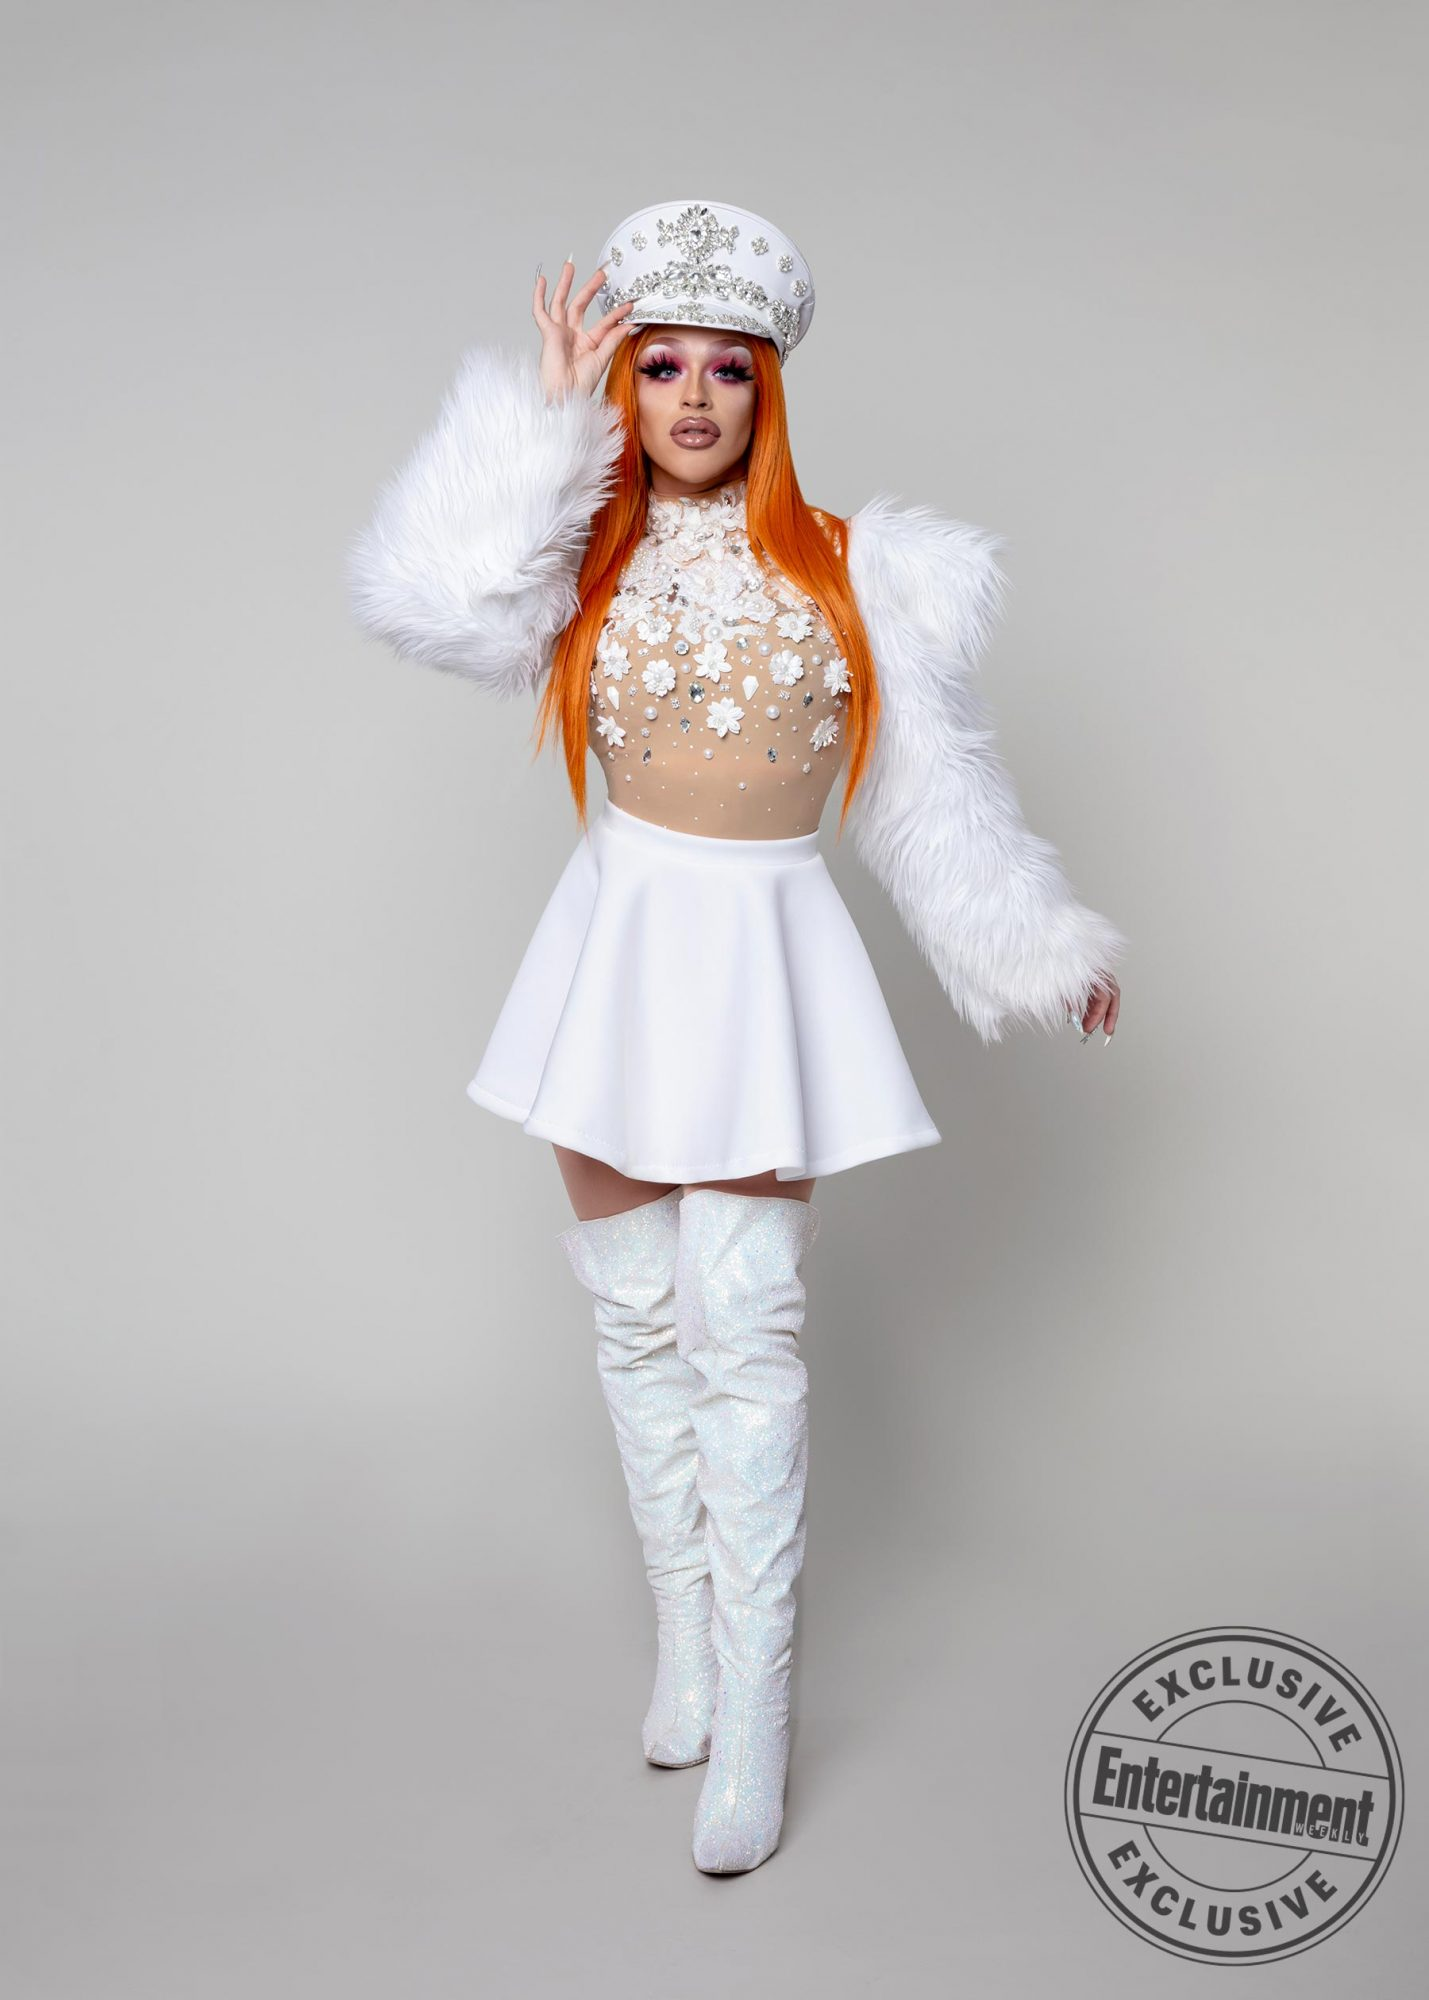 RuPaul's Drag Race Drag QueensPictured:Credit: Mettie Ostrowski for EW